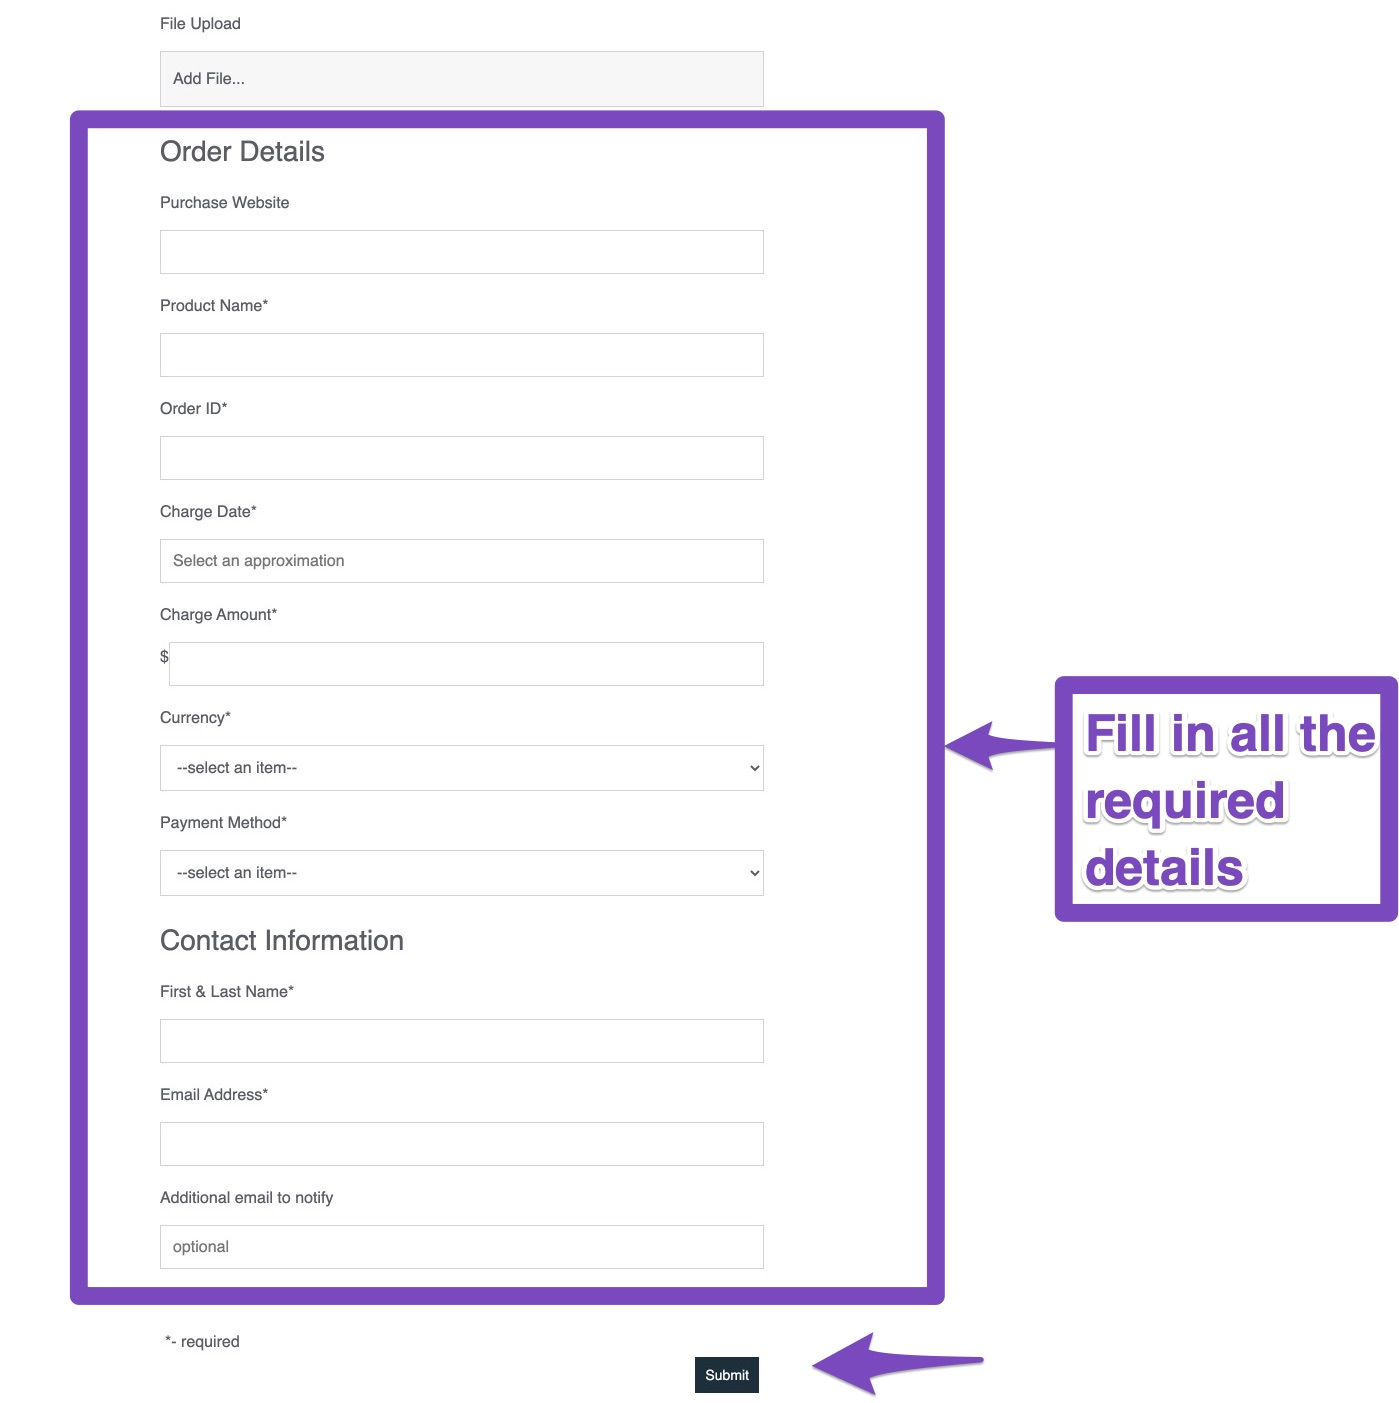 Fill in the required details